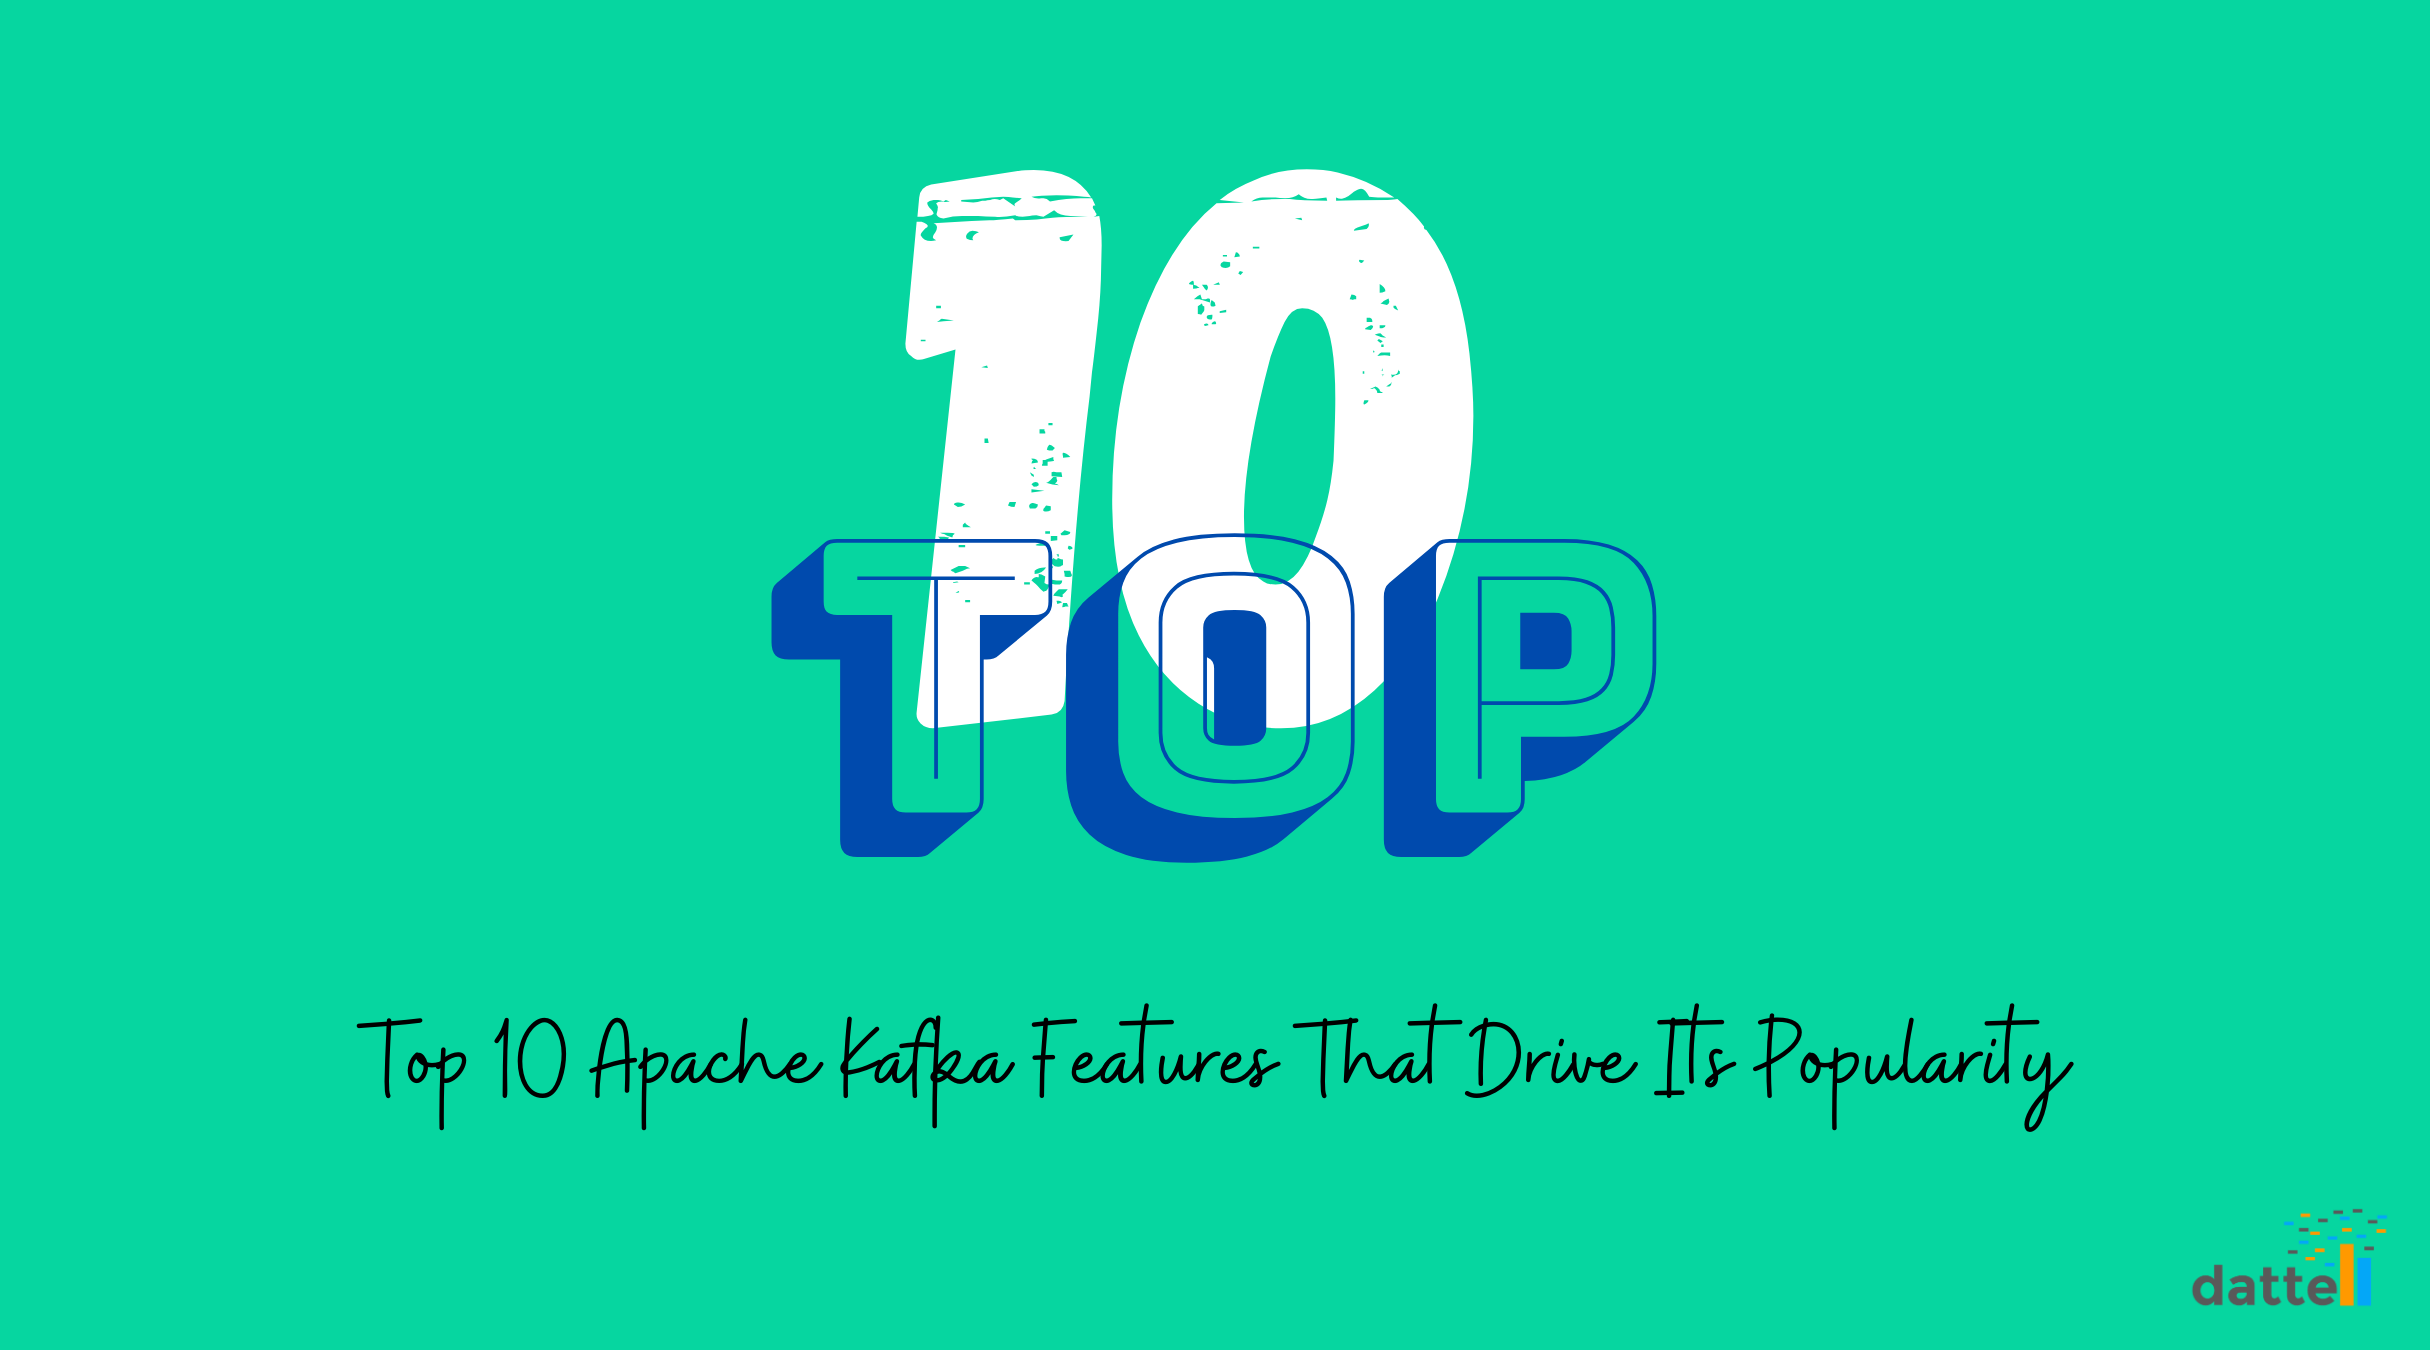 Top 10 written in large font with the subtitle, Top 10 Apache Kafka Features, below it.